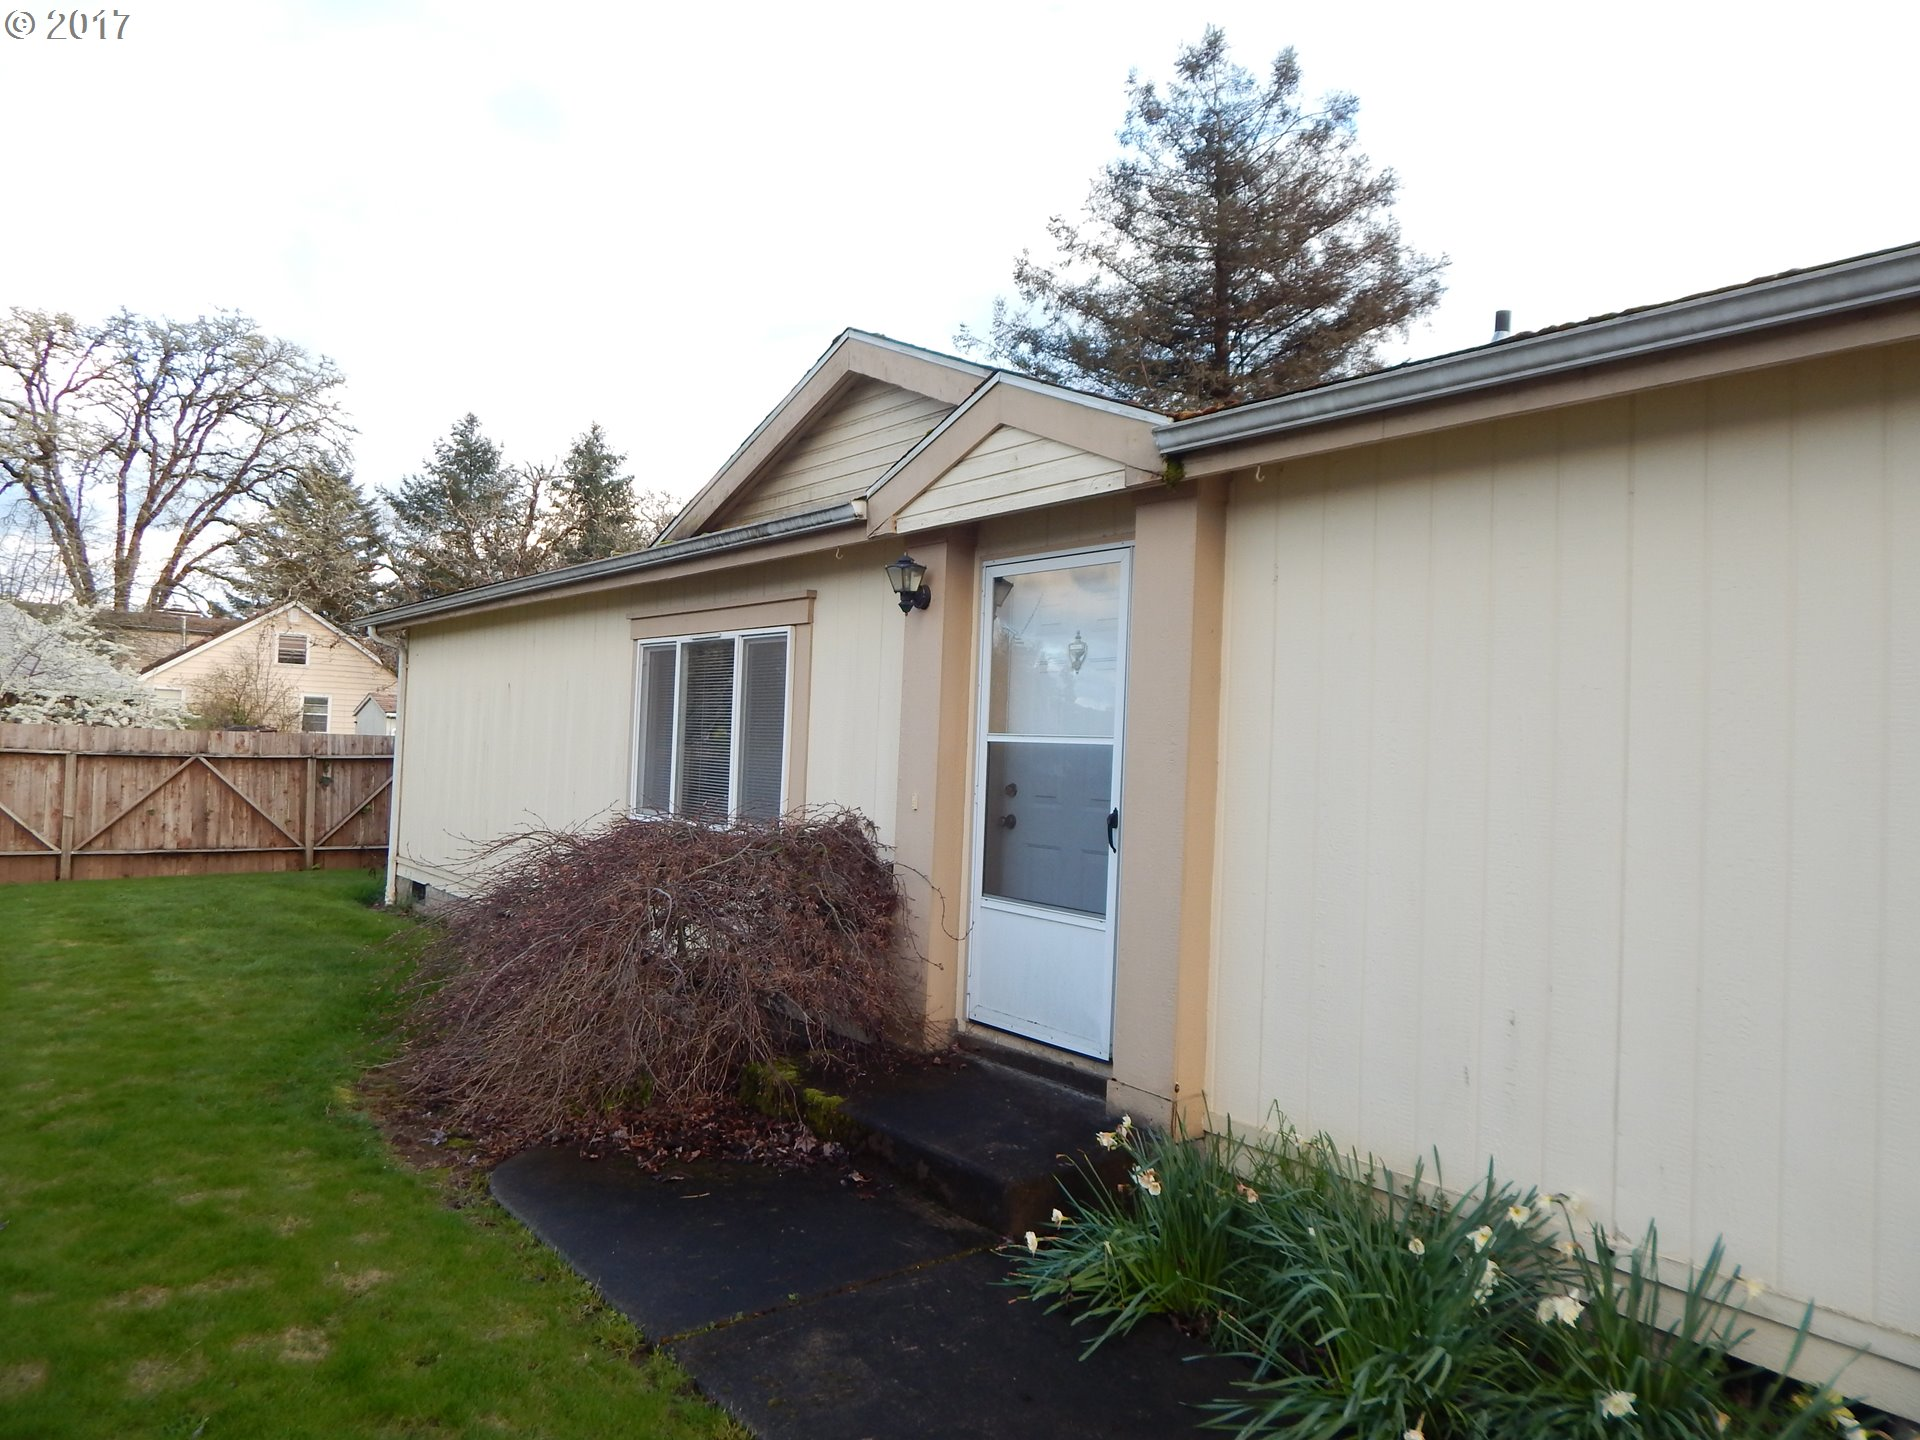 1975 W MAIN ST, Cottage Grove, OR 97424